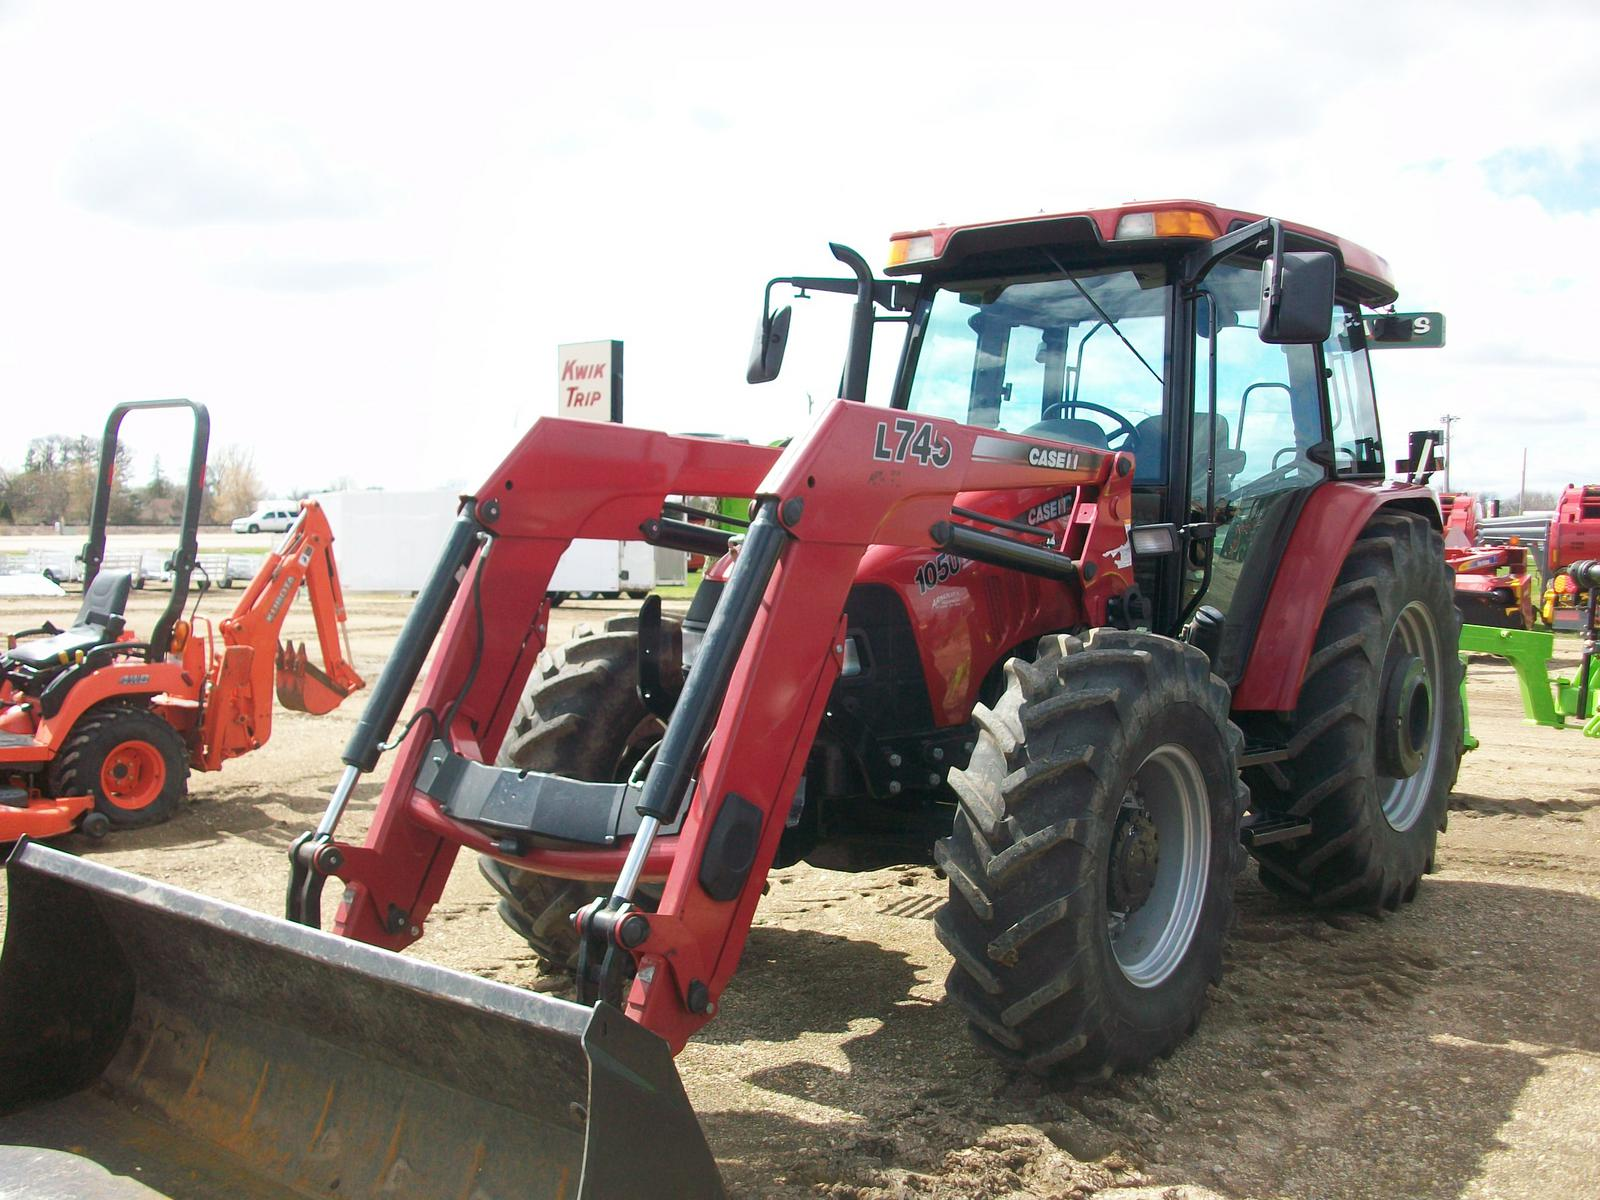 Inventory from Case IH Trueman-Welter's Tractor and